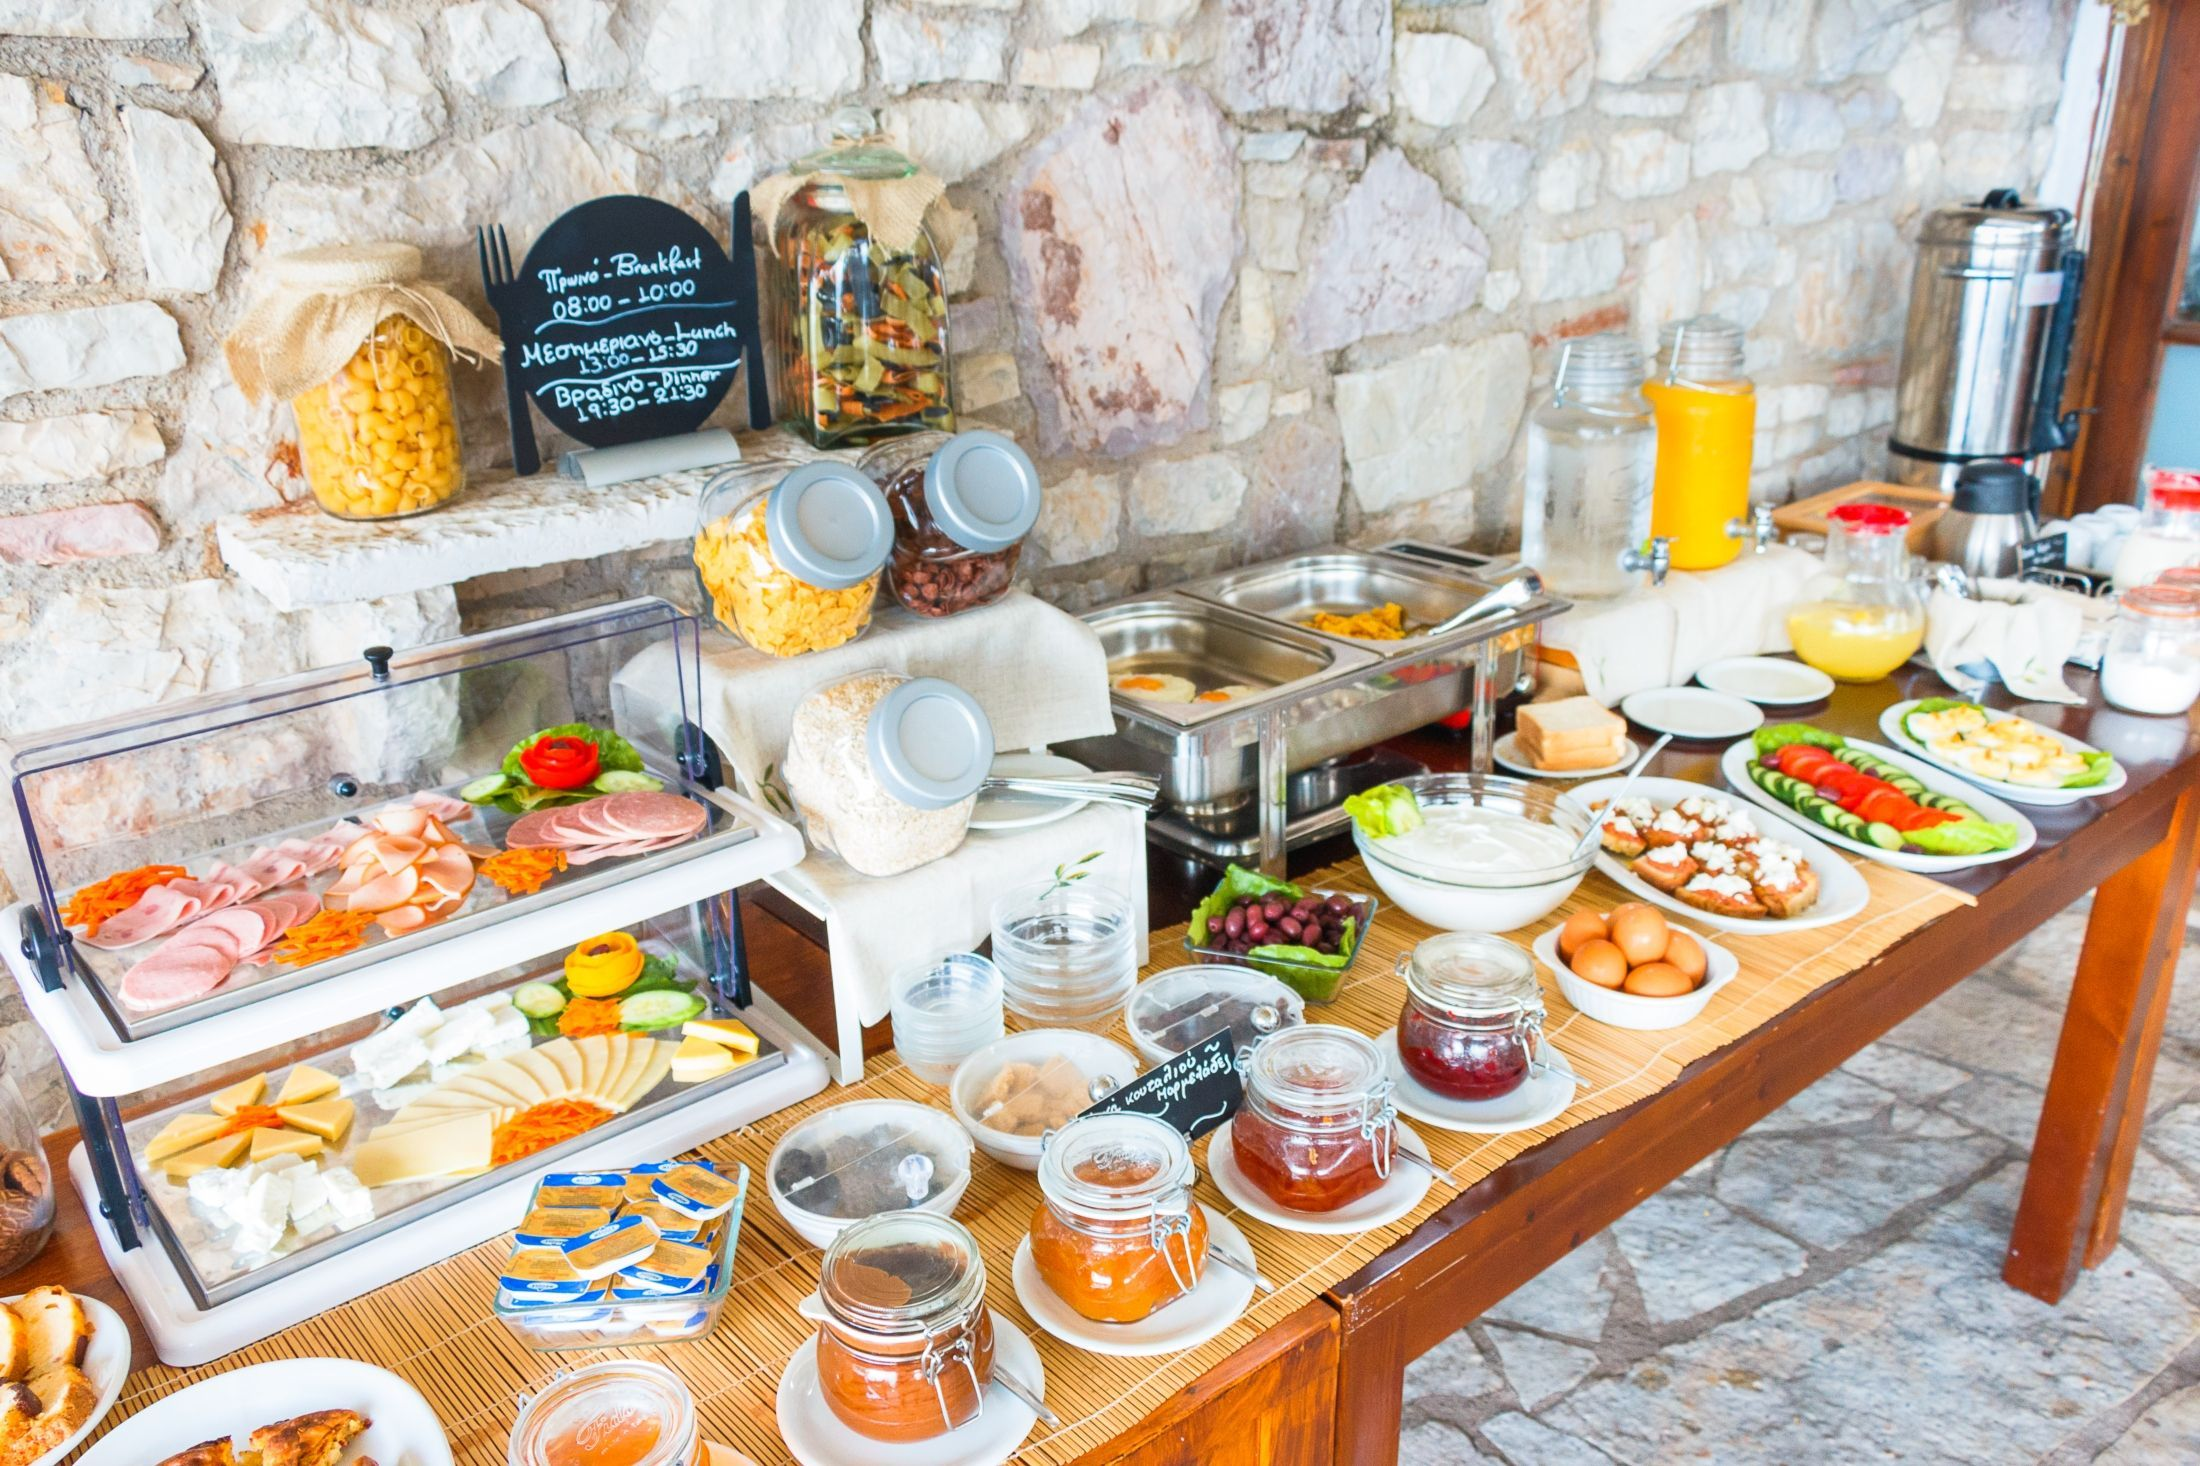 Buffet Breakfast Hotel Holidays Petalidi Messiniahotel